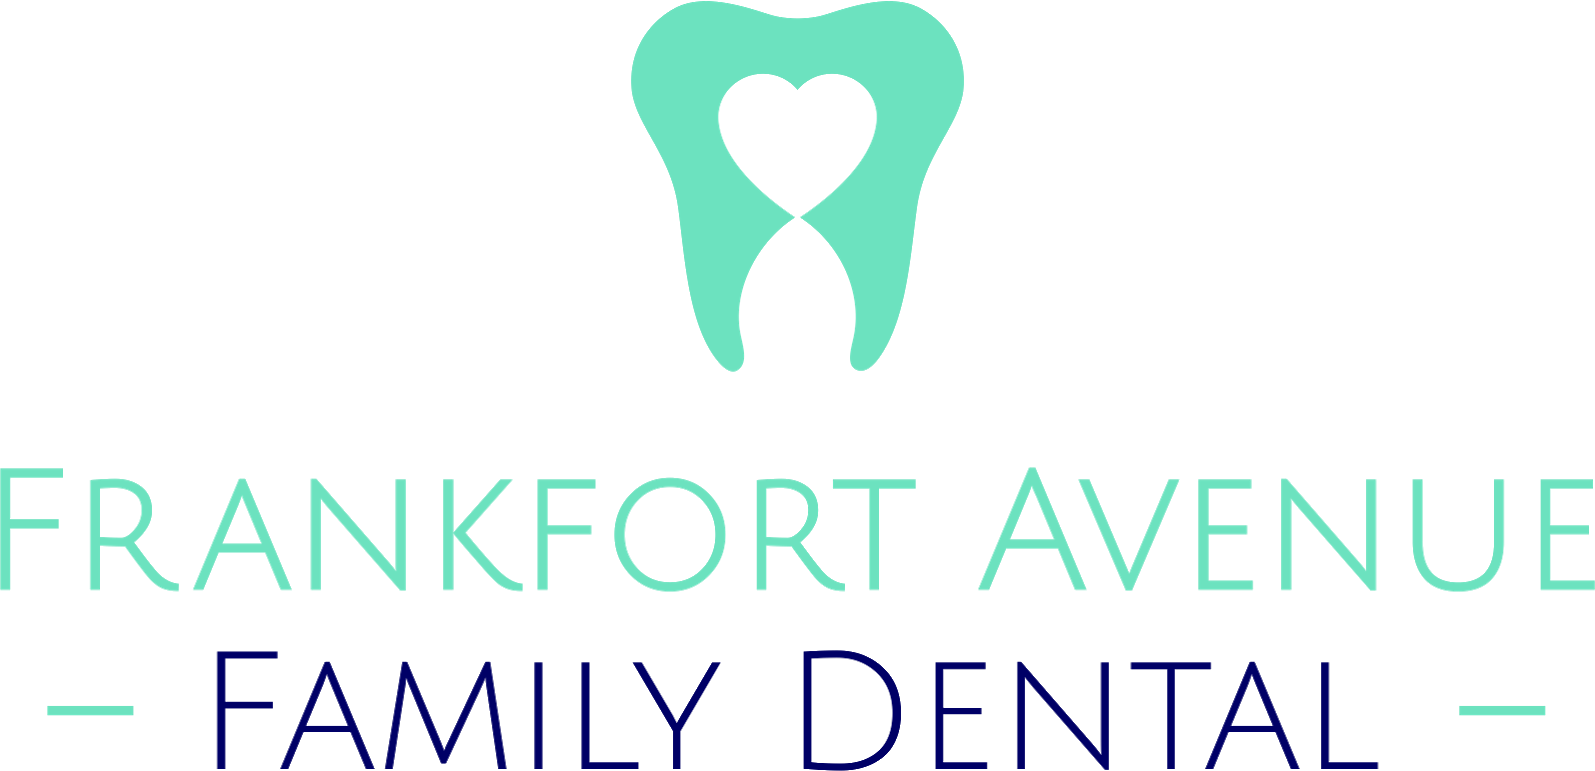 Frankfort Avenue Family Dental